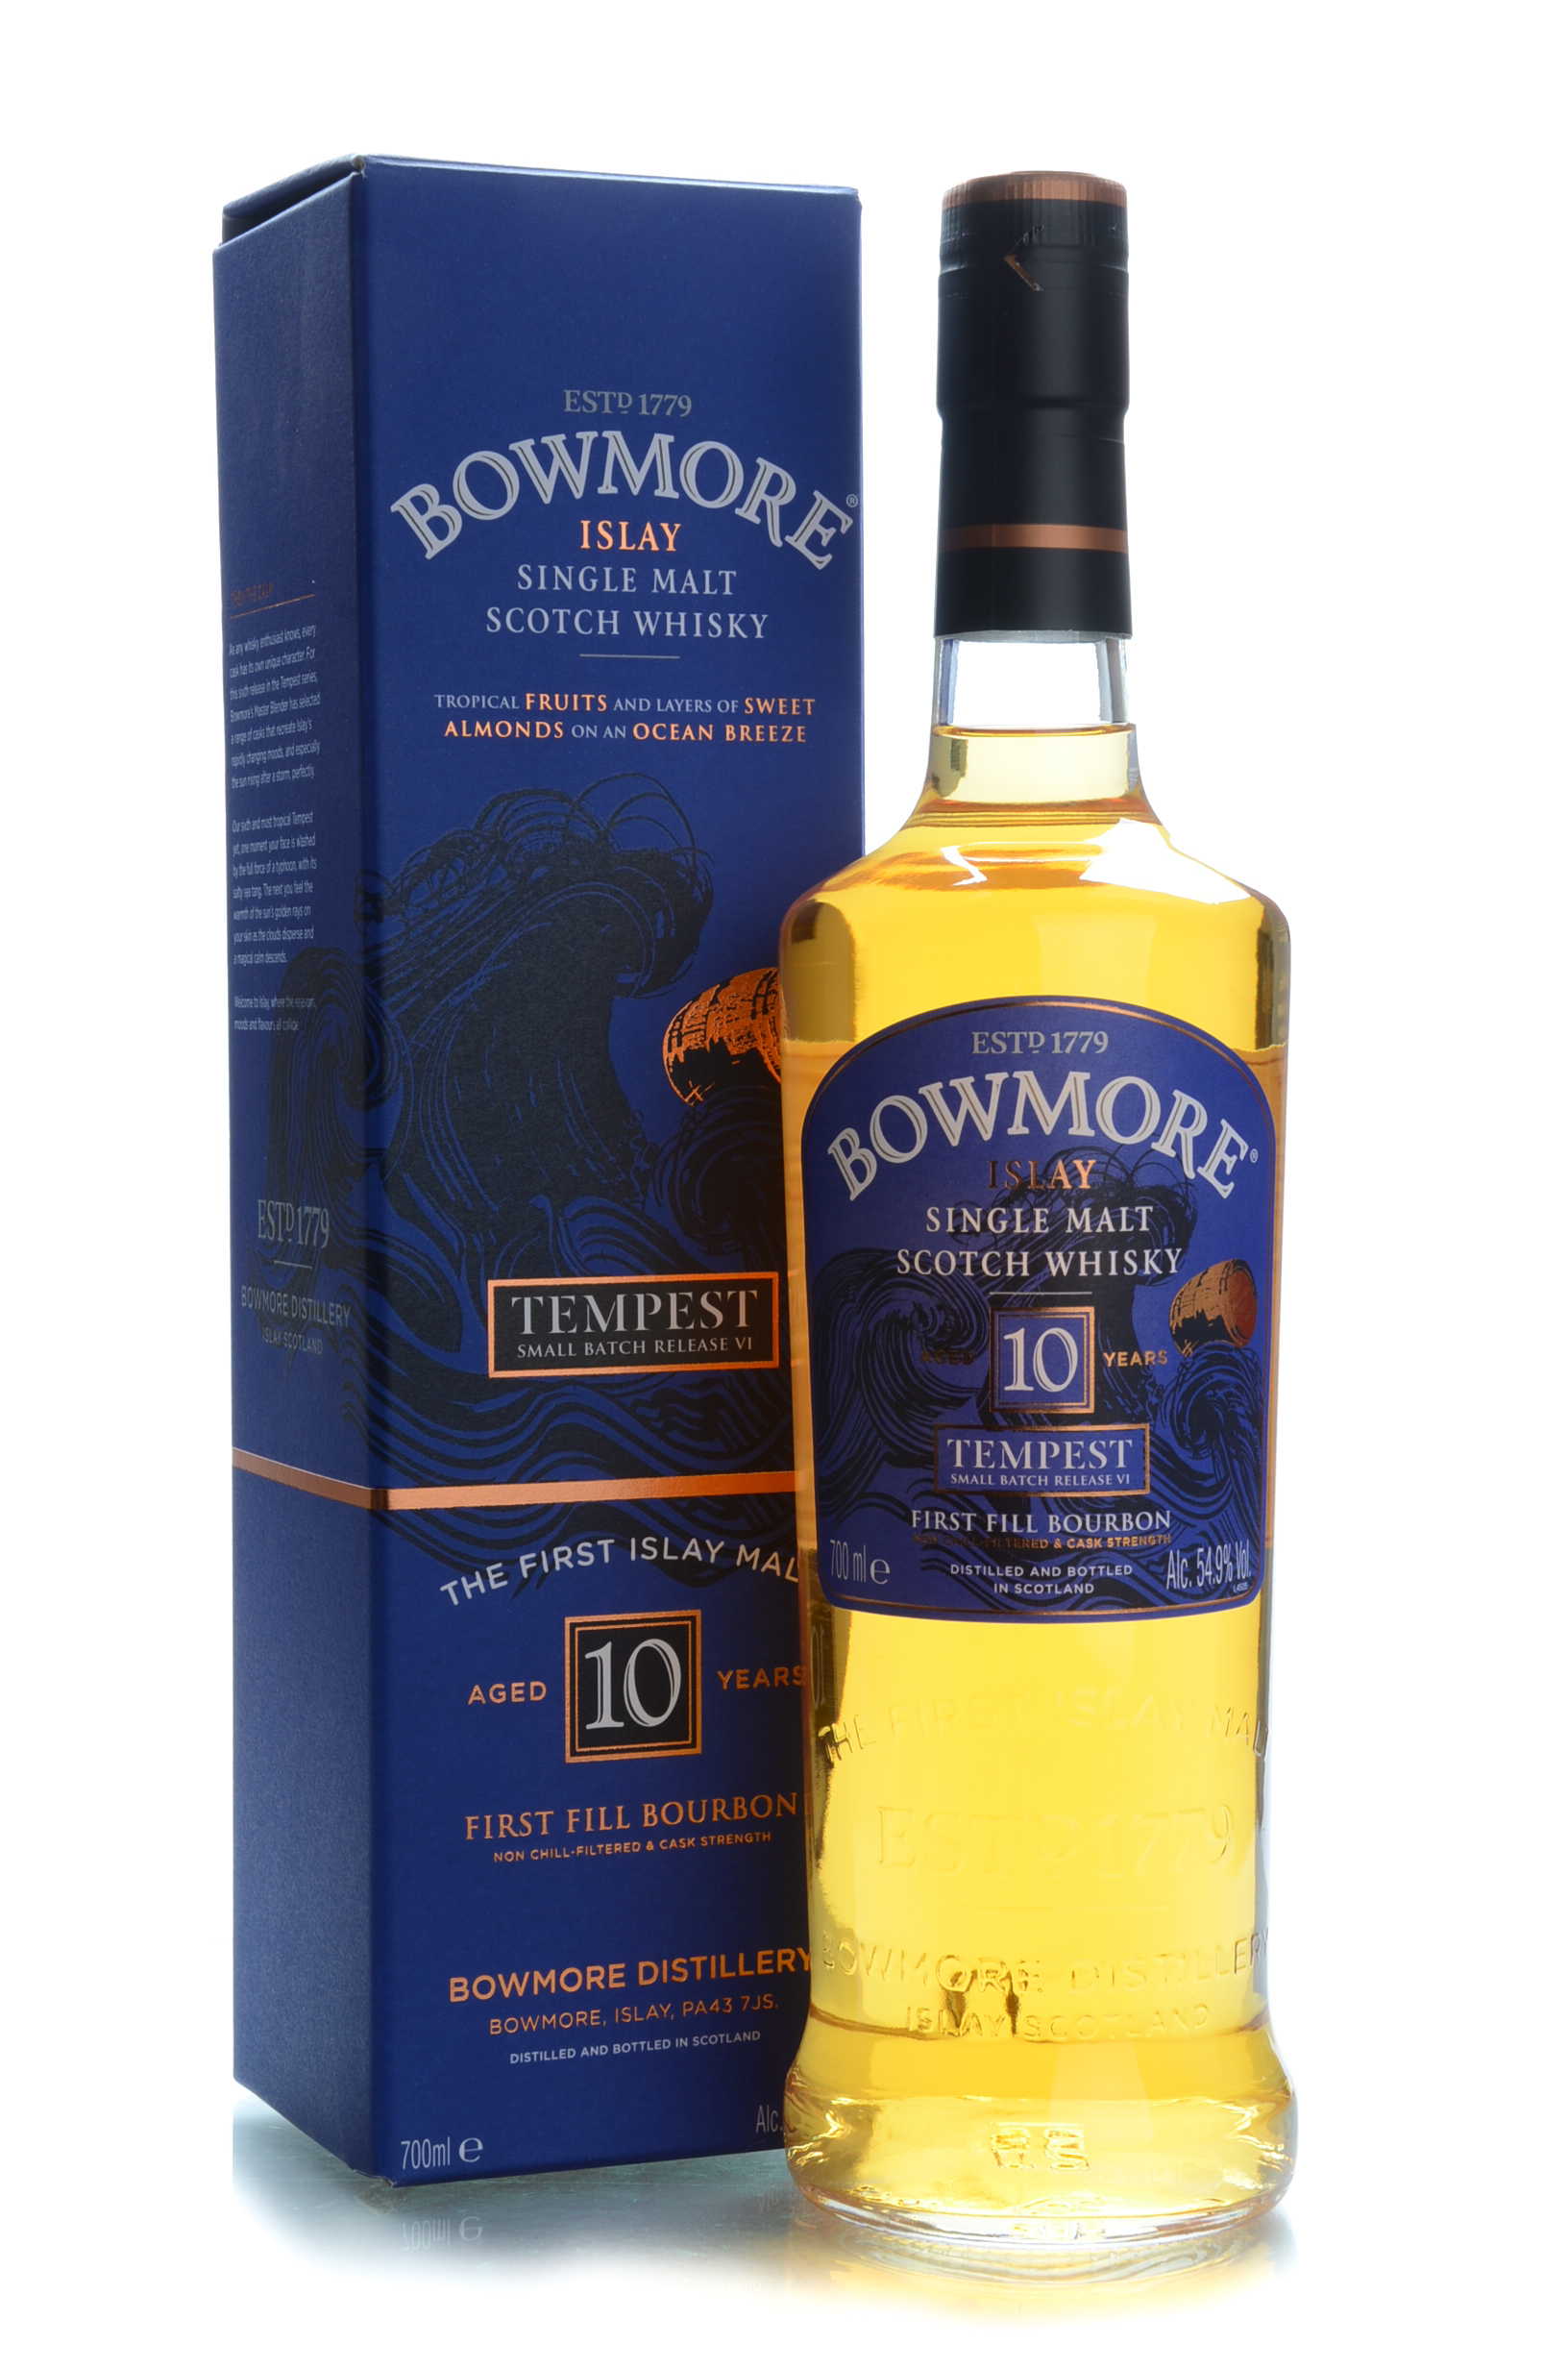 Bowmore 10y tempest release 6 54.9